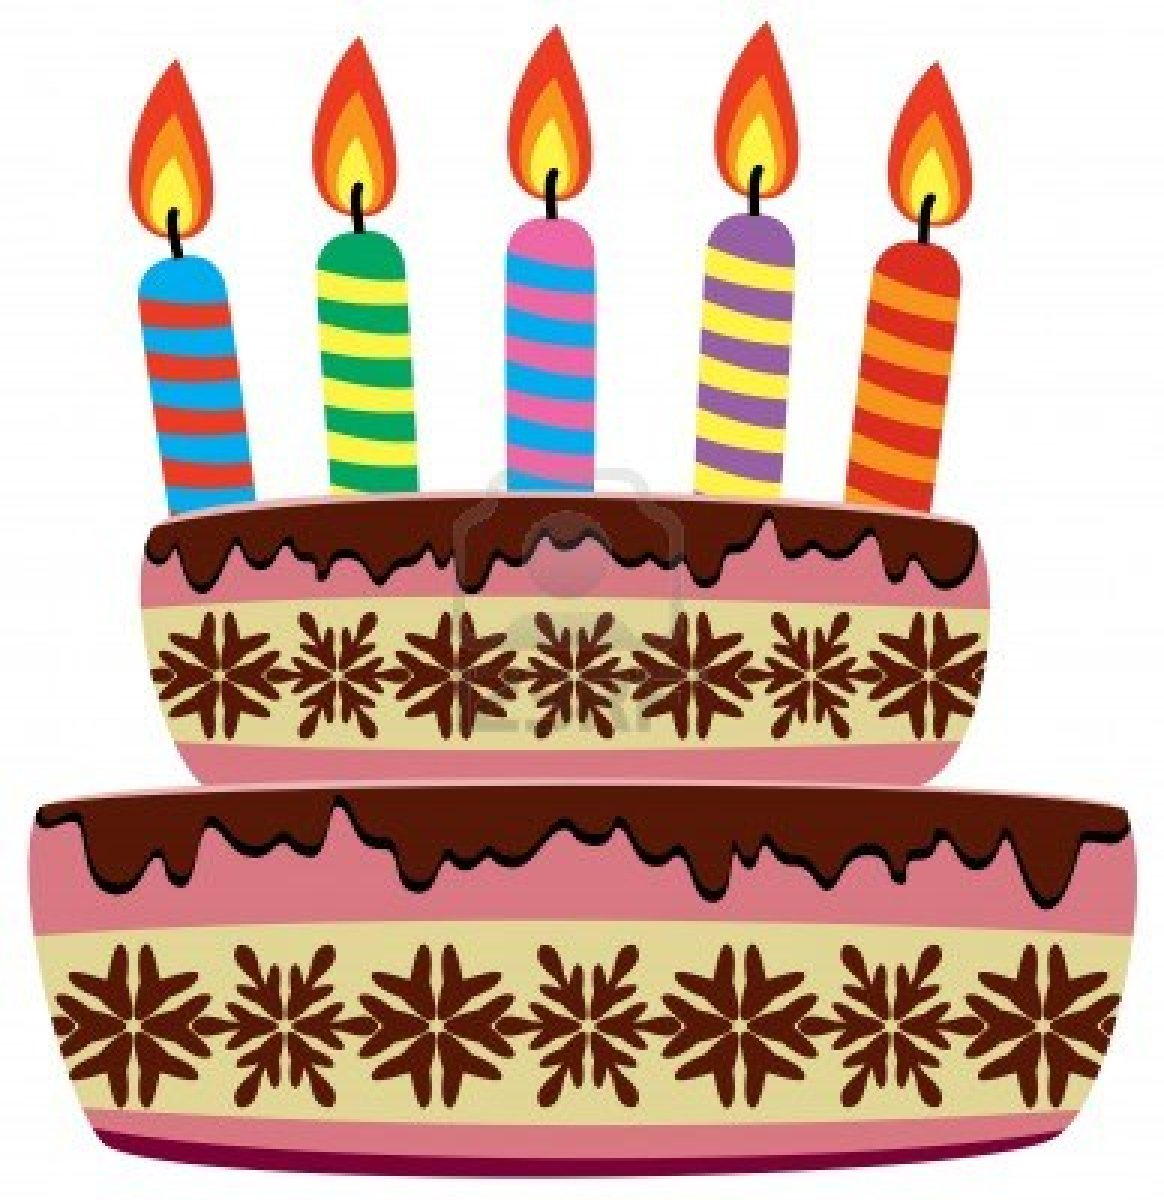 9206919-vector-birthday-cake-with-burning-candles